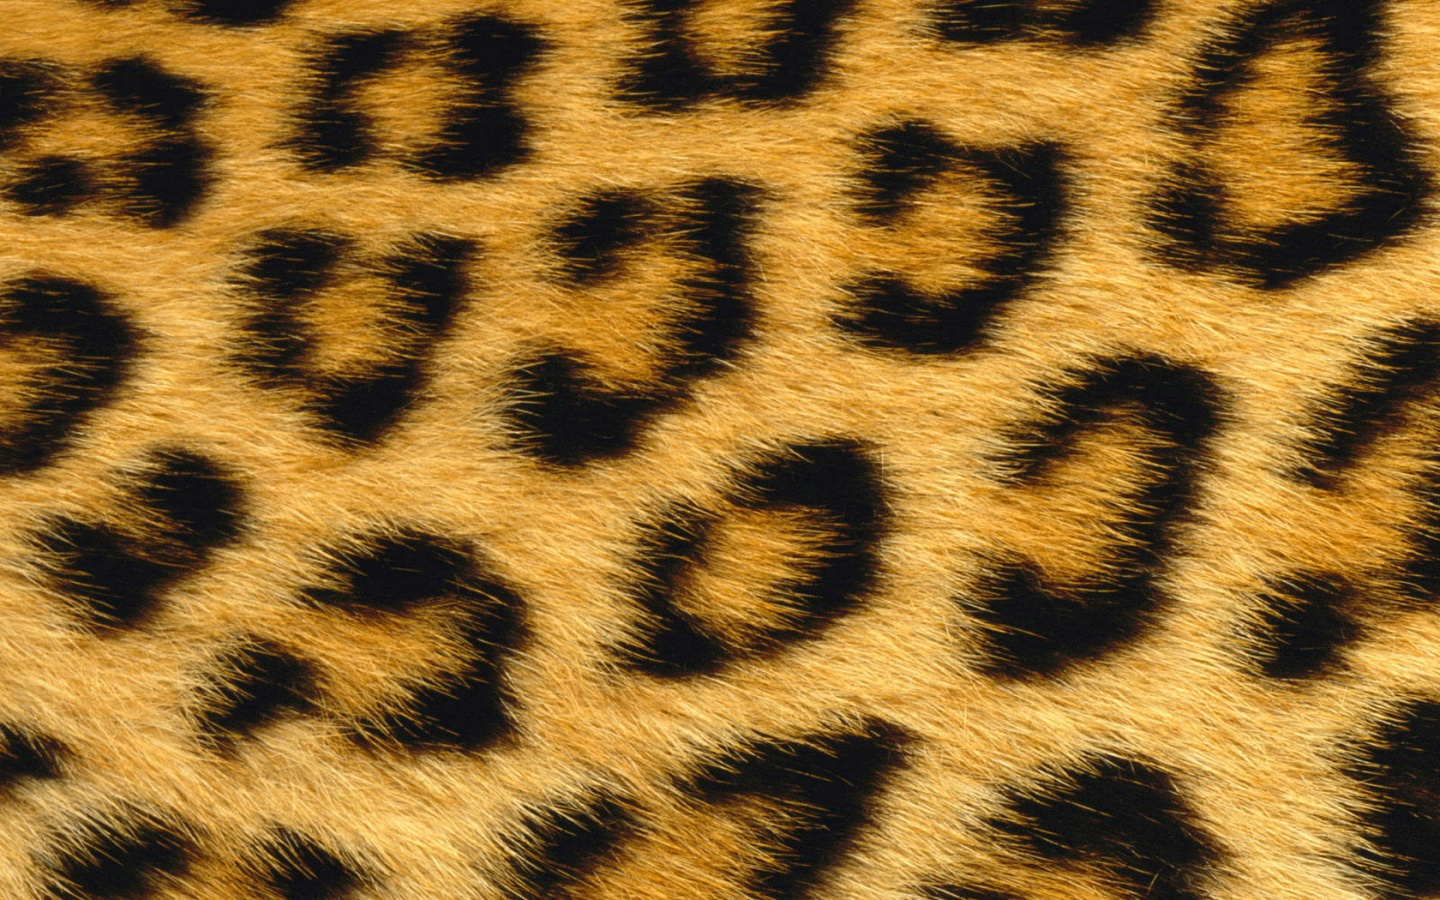 1440x900 Leopard Skin desktop PC and Mac wallpaper 1440x900